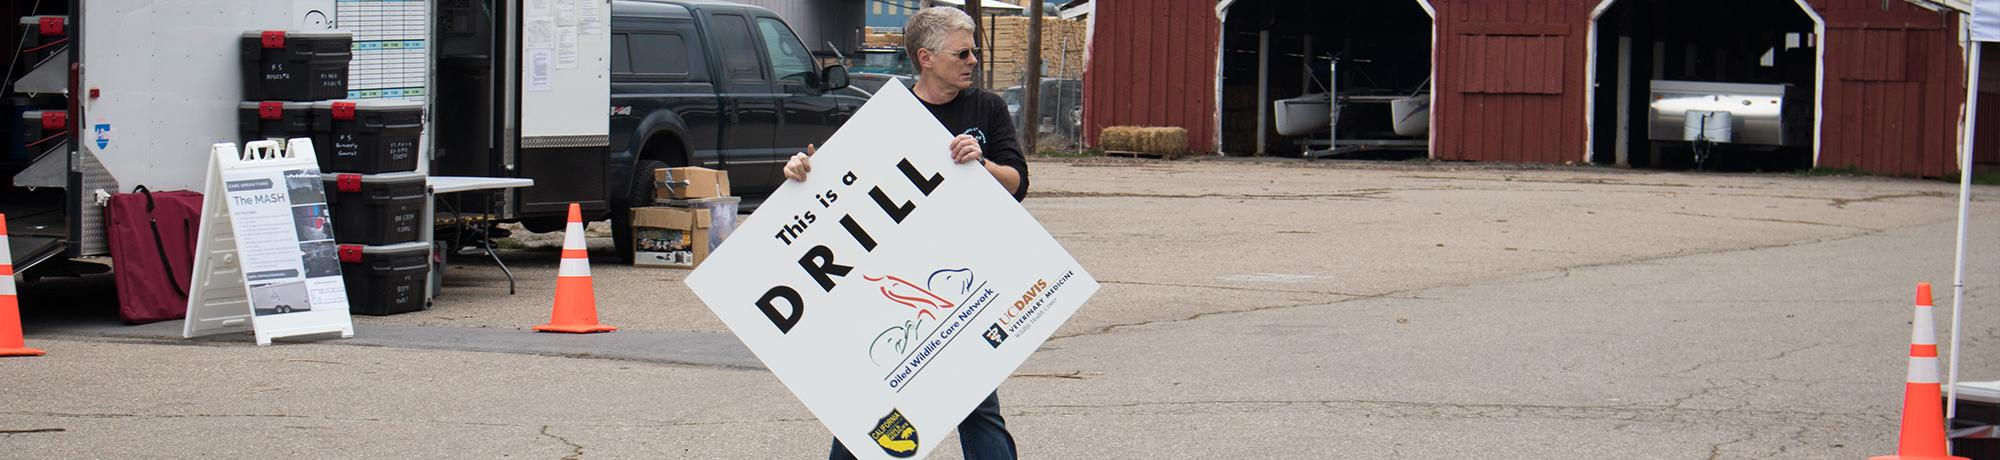 Michael Ziccardi carrying drill sign